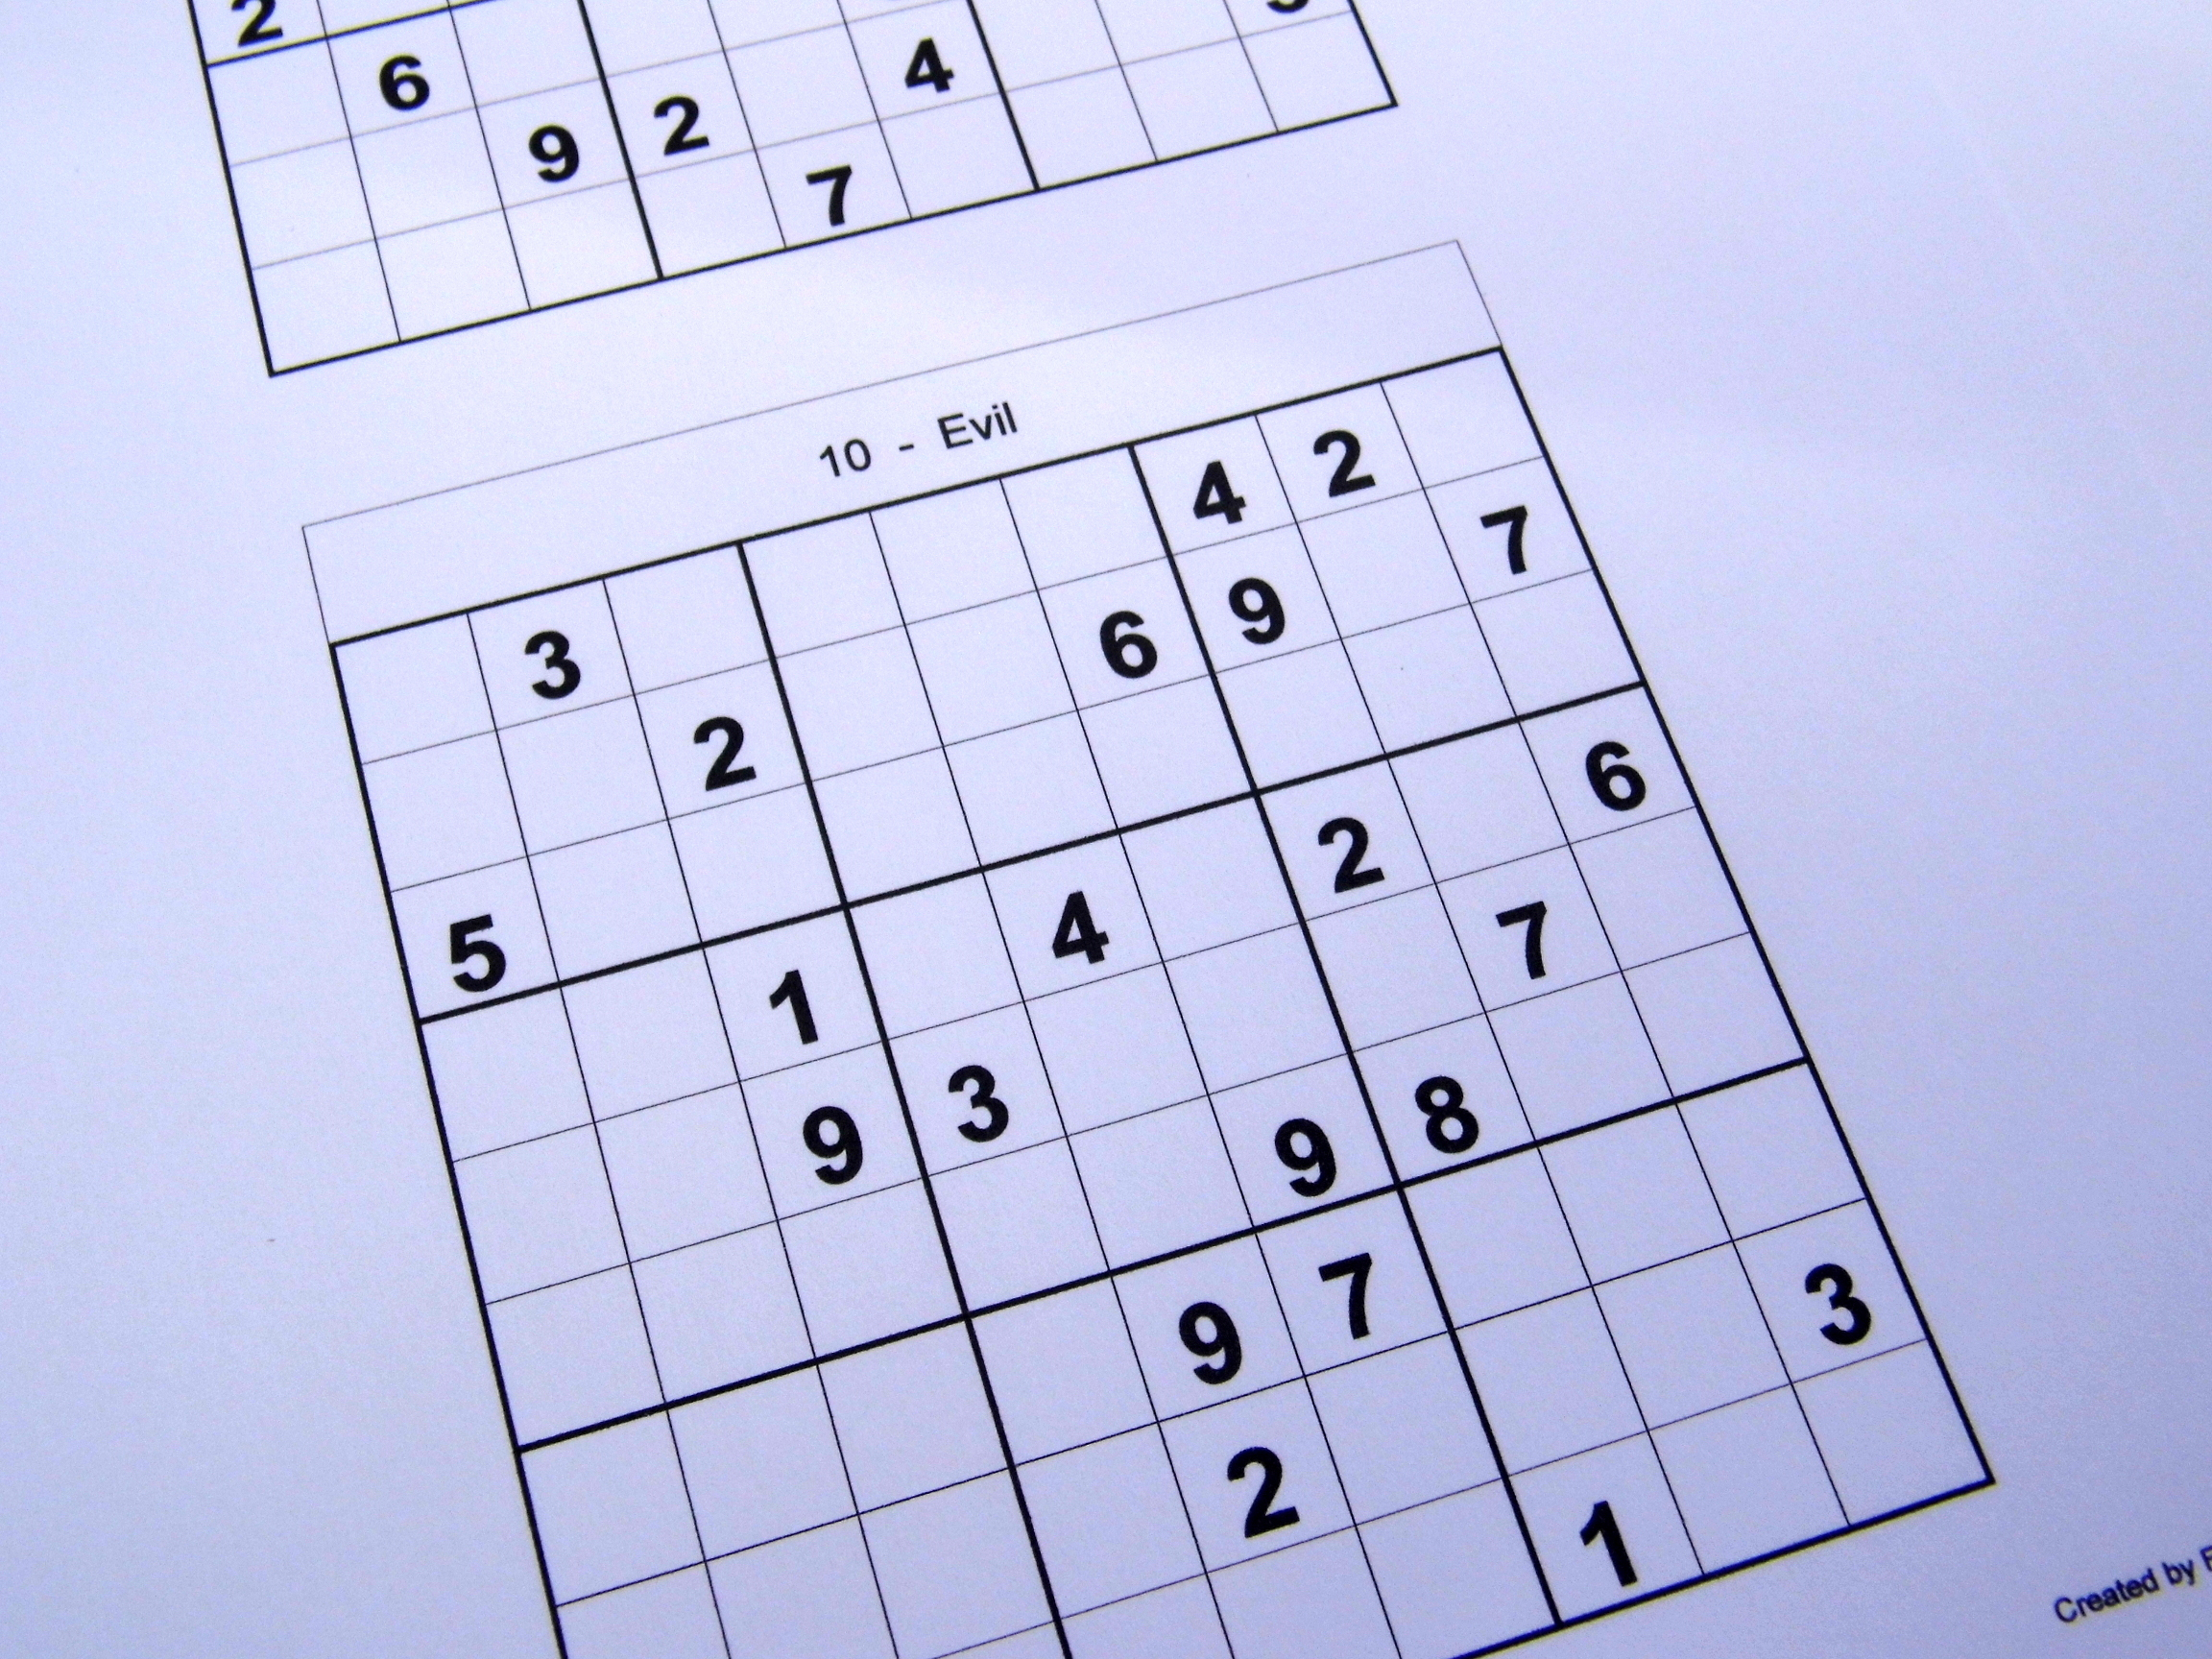 2 Puzzles Per Page – Free Sudoku Puzzles - Printable Sudoku Puzzles 2 Per Page